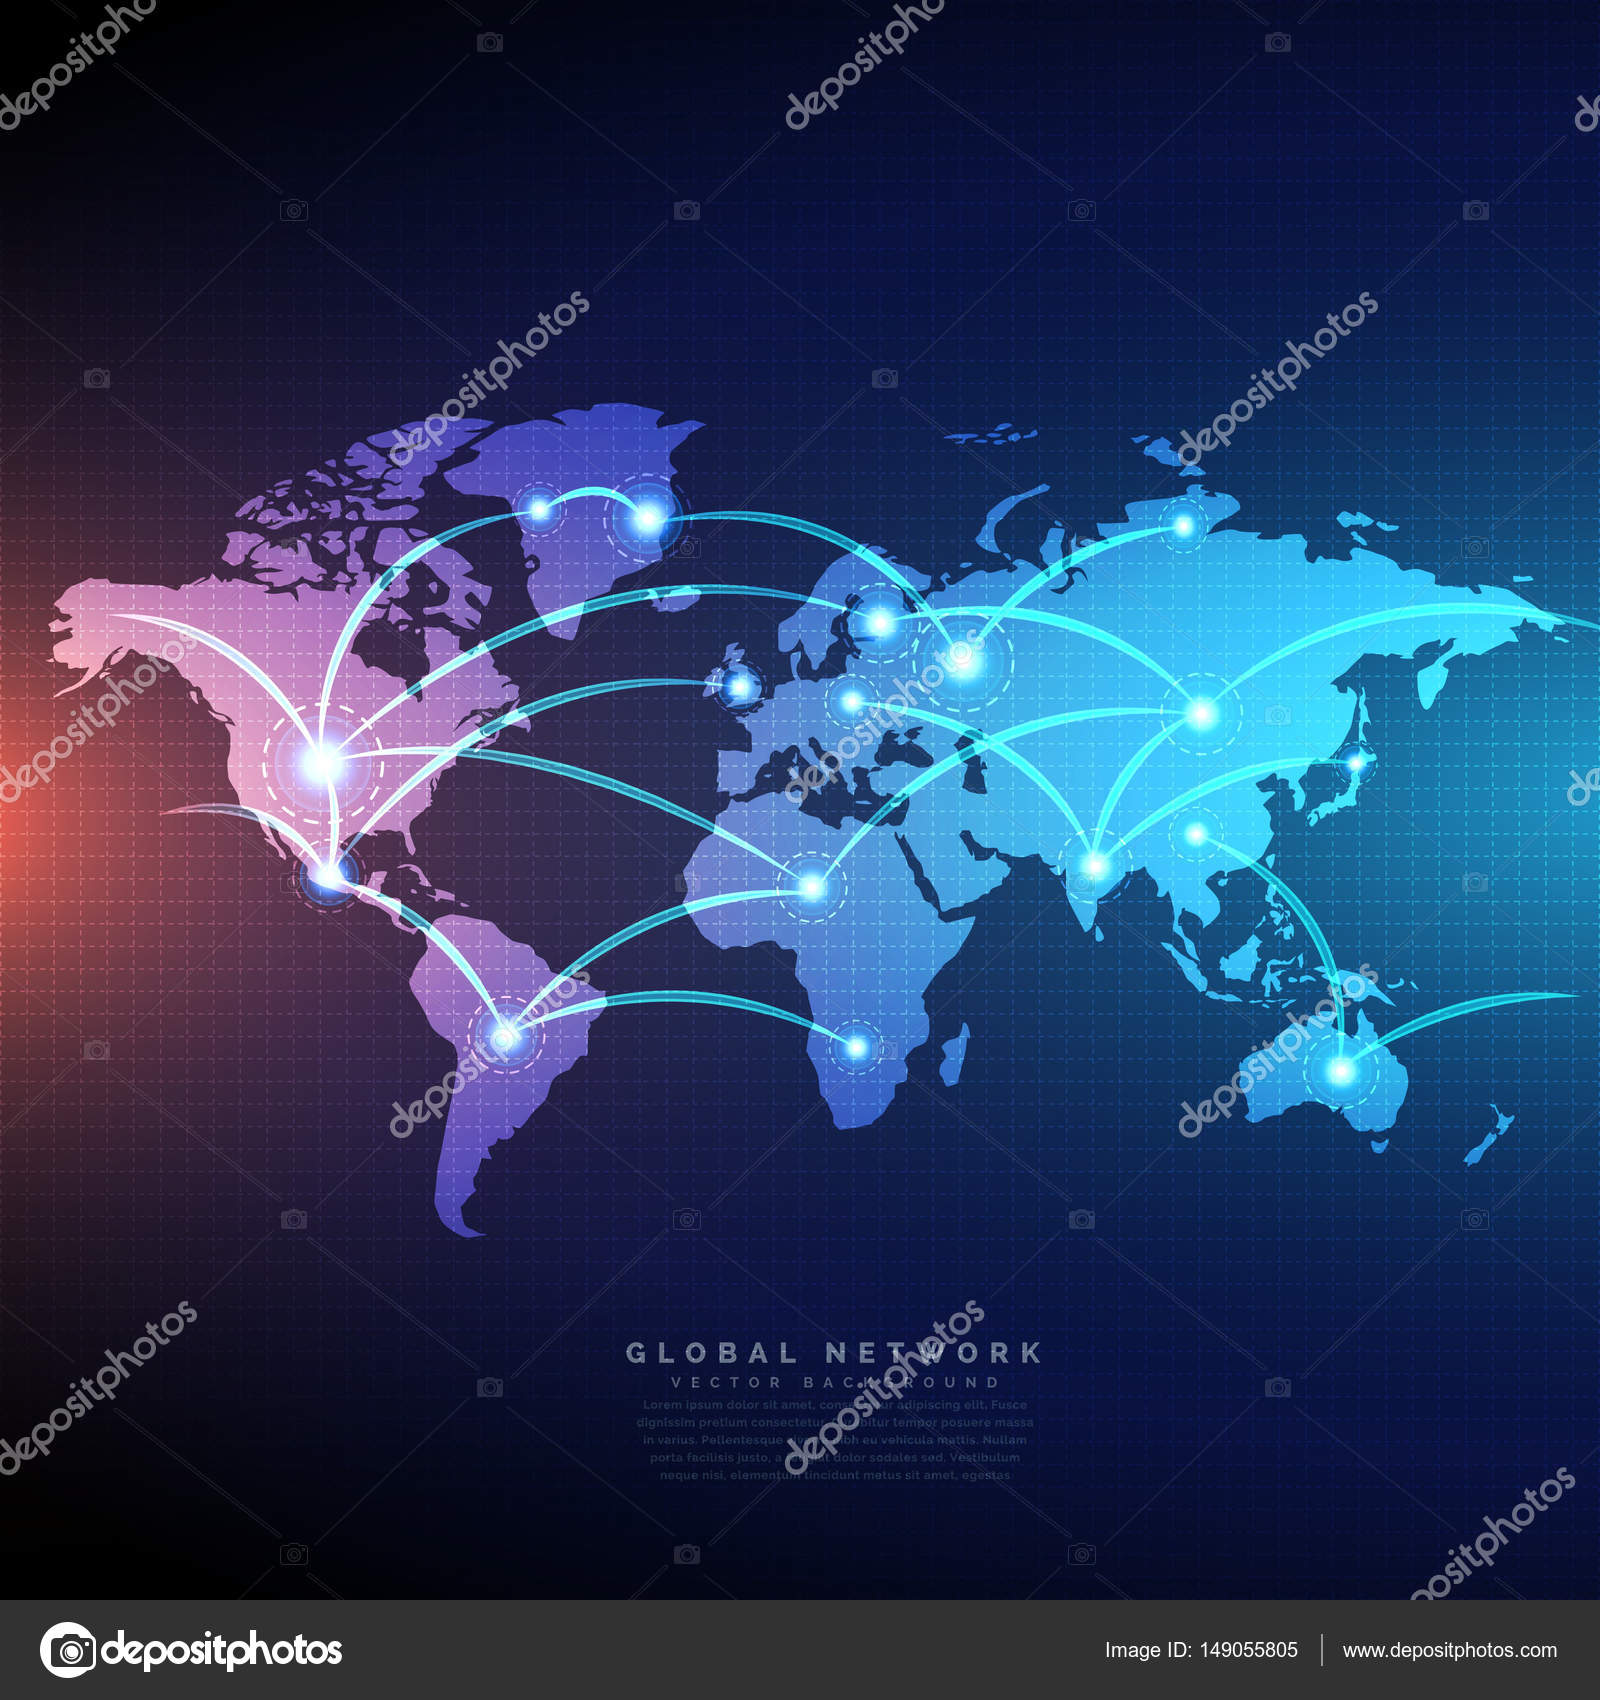 Digital world map linked by lines connections network design stock digital world map linked by lines connections network design stock vector gumiabroncs Gallery